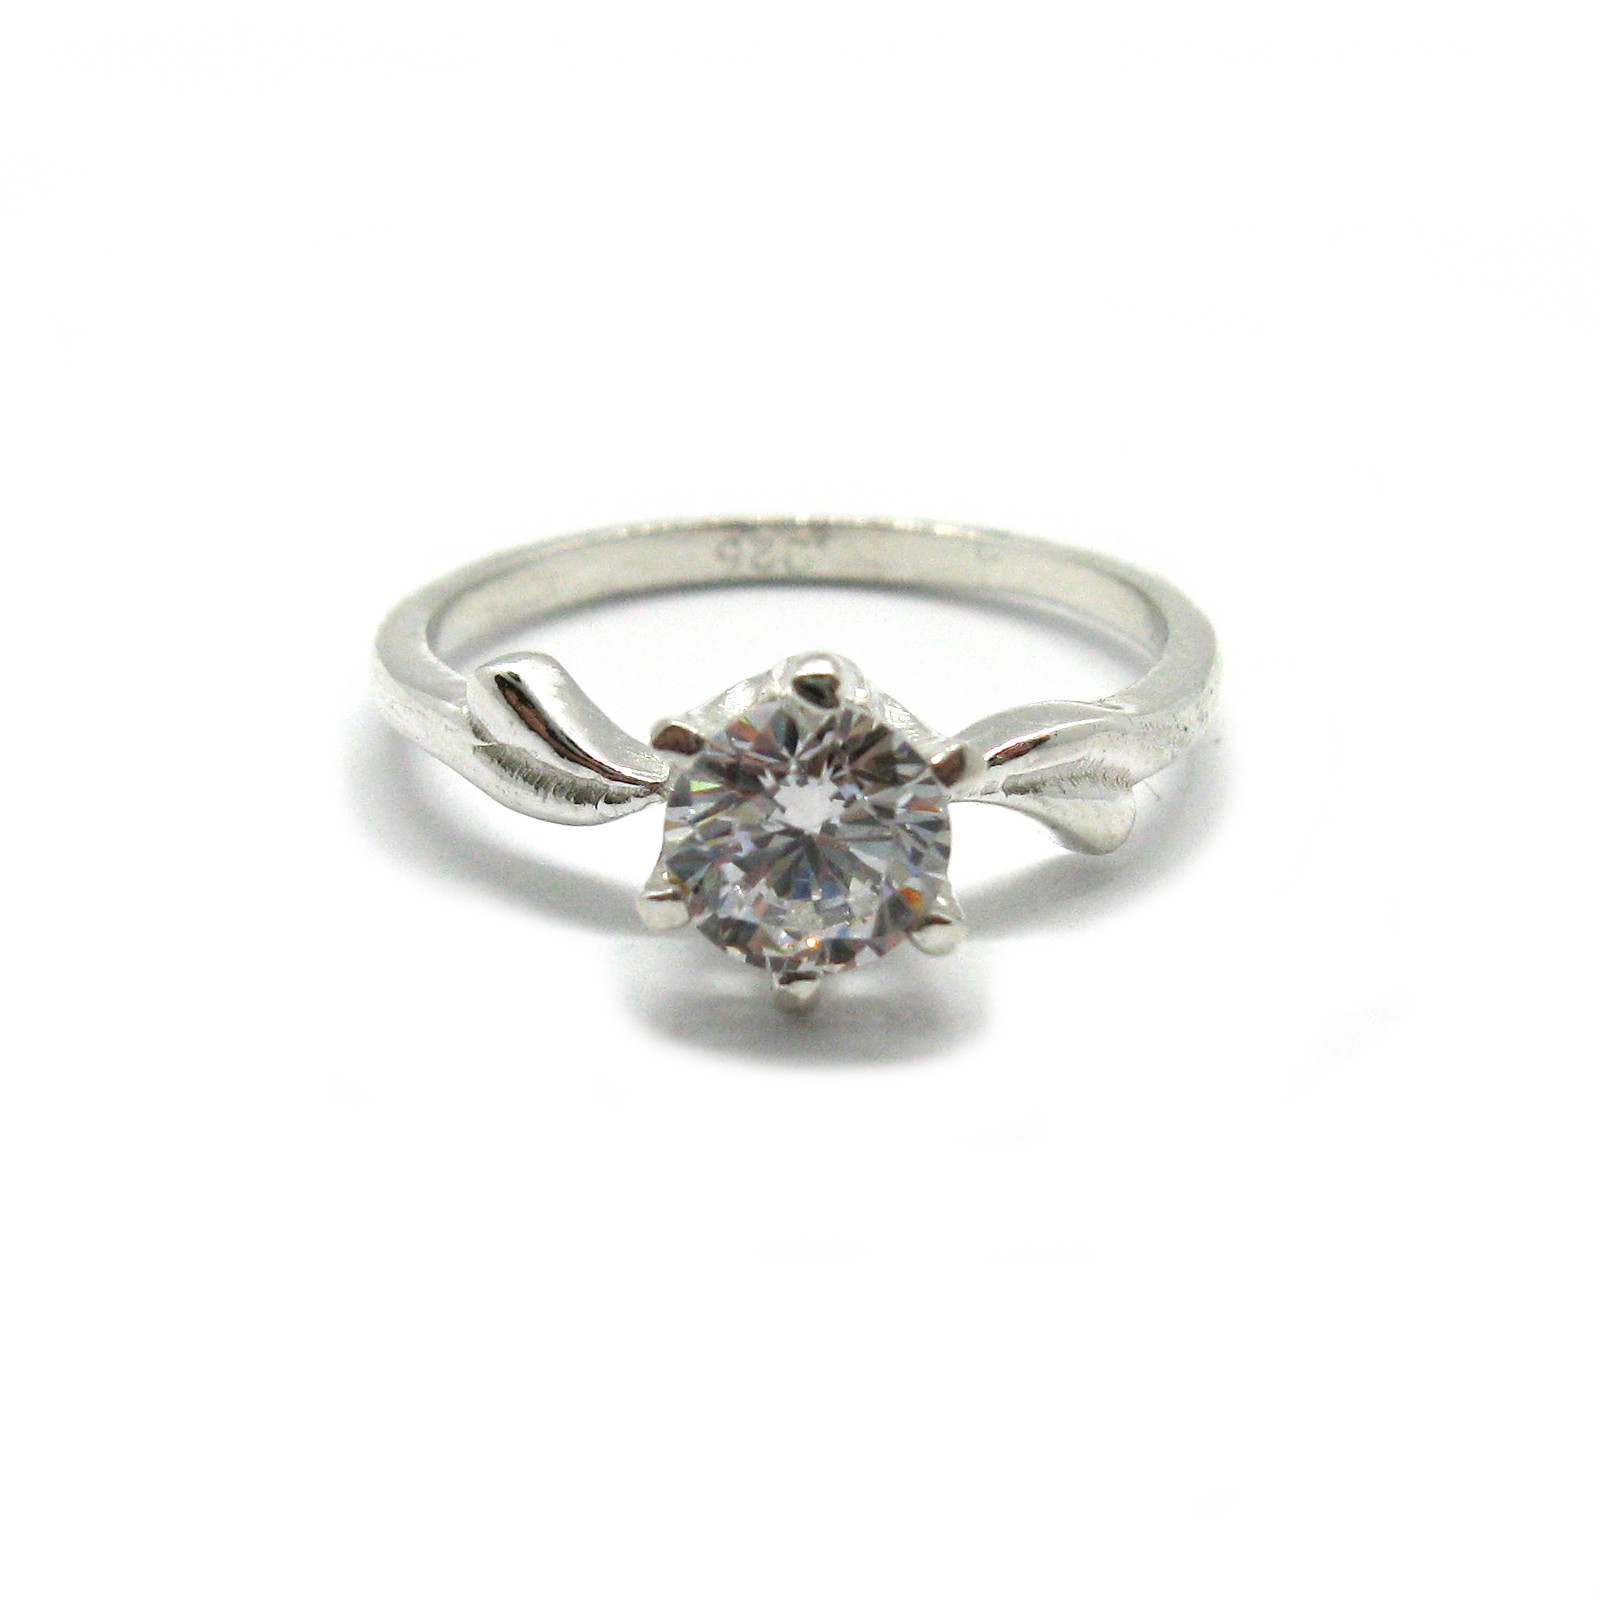 Silver ring - R001895